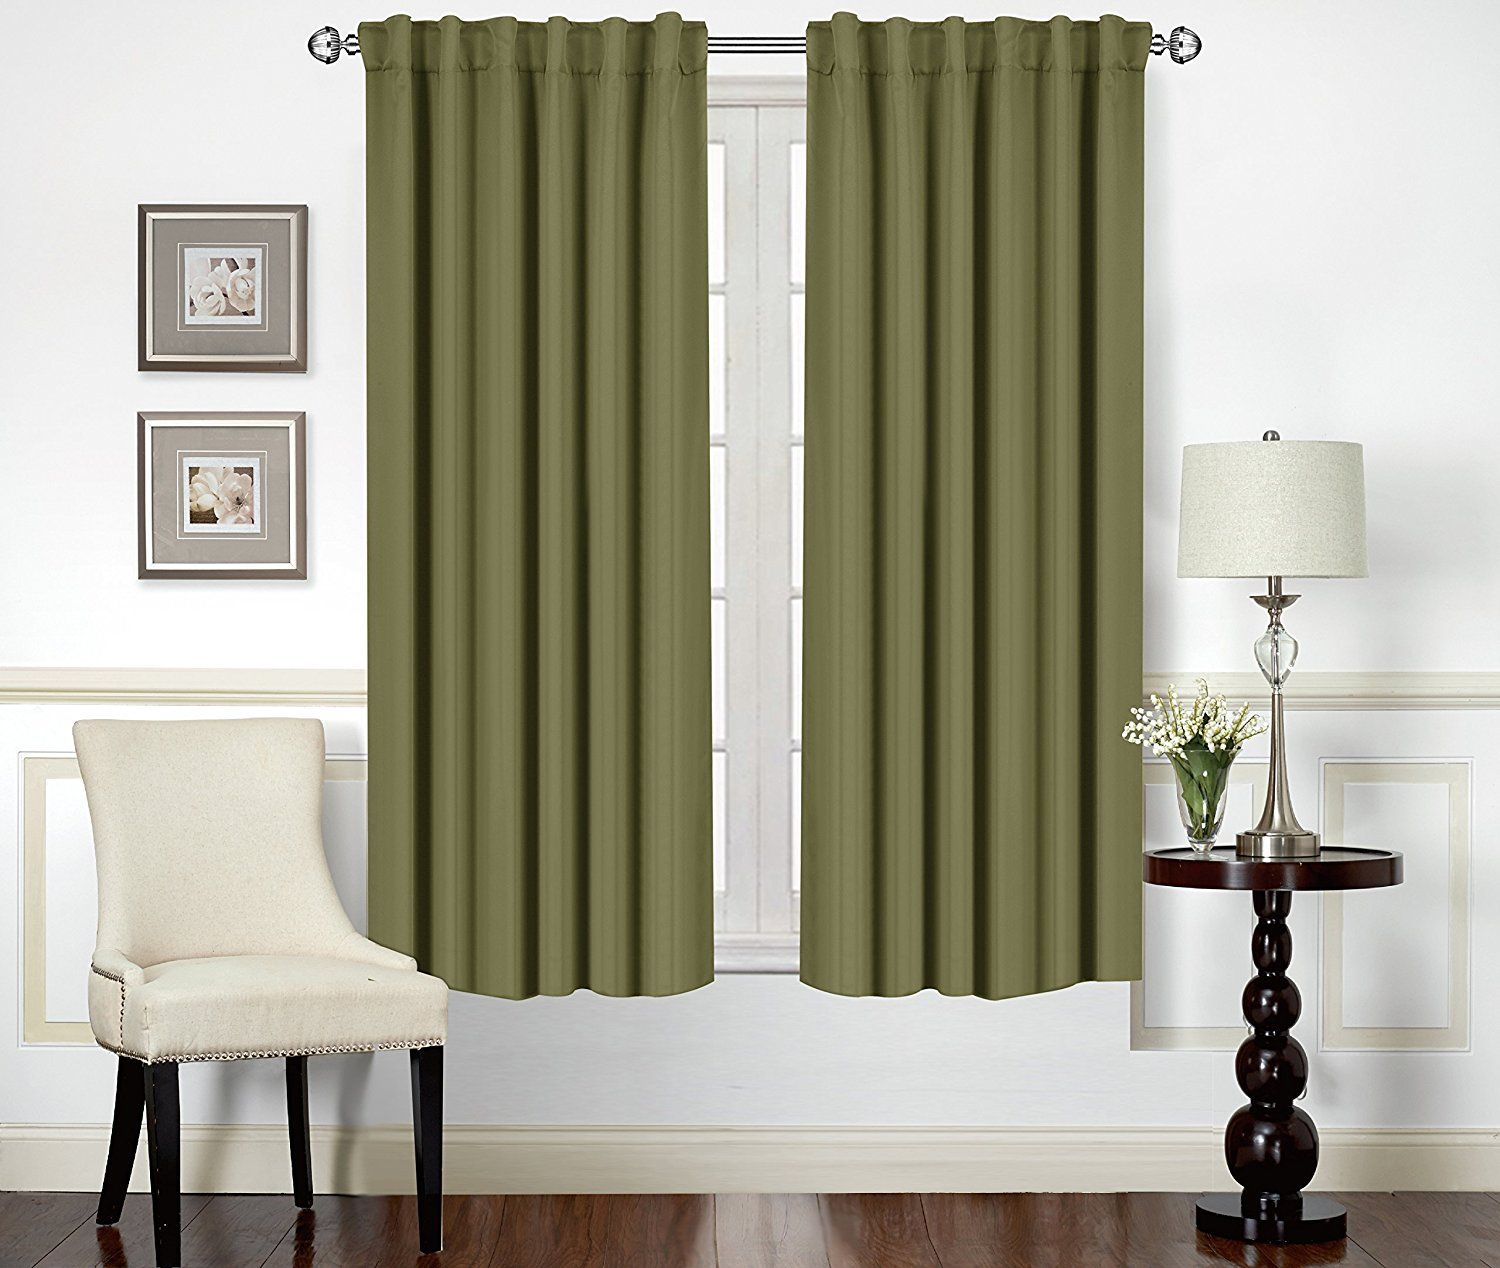 Blackout room darkening curtains window panel drapes olive color